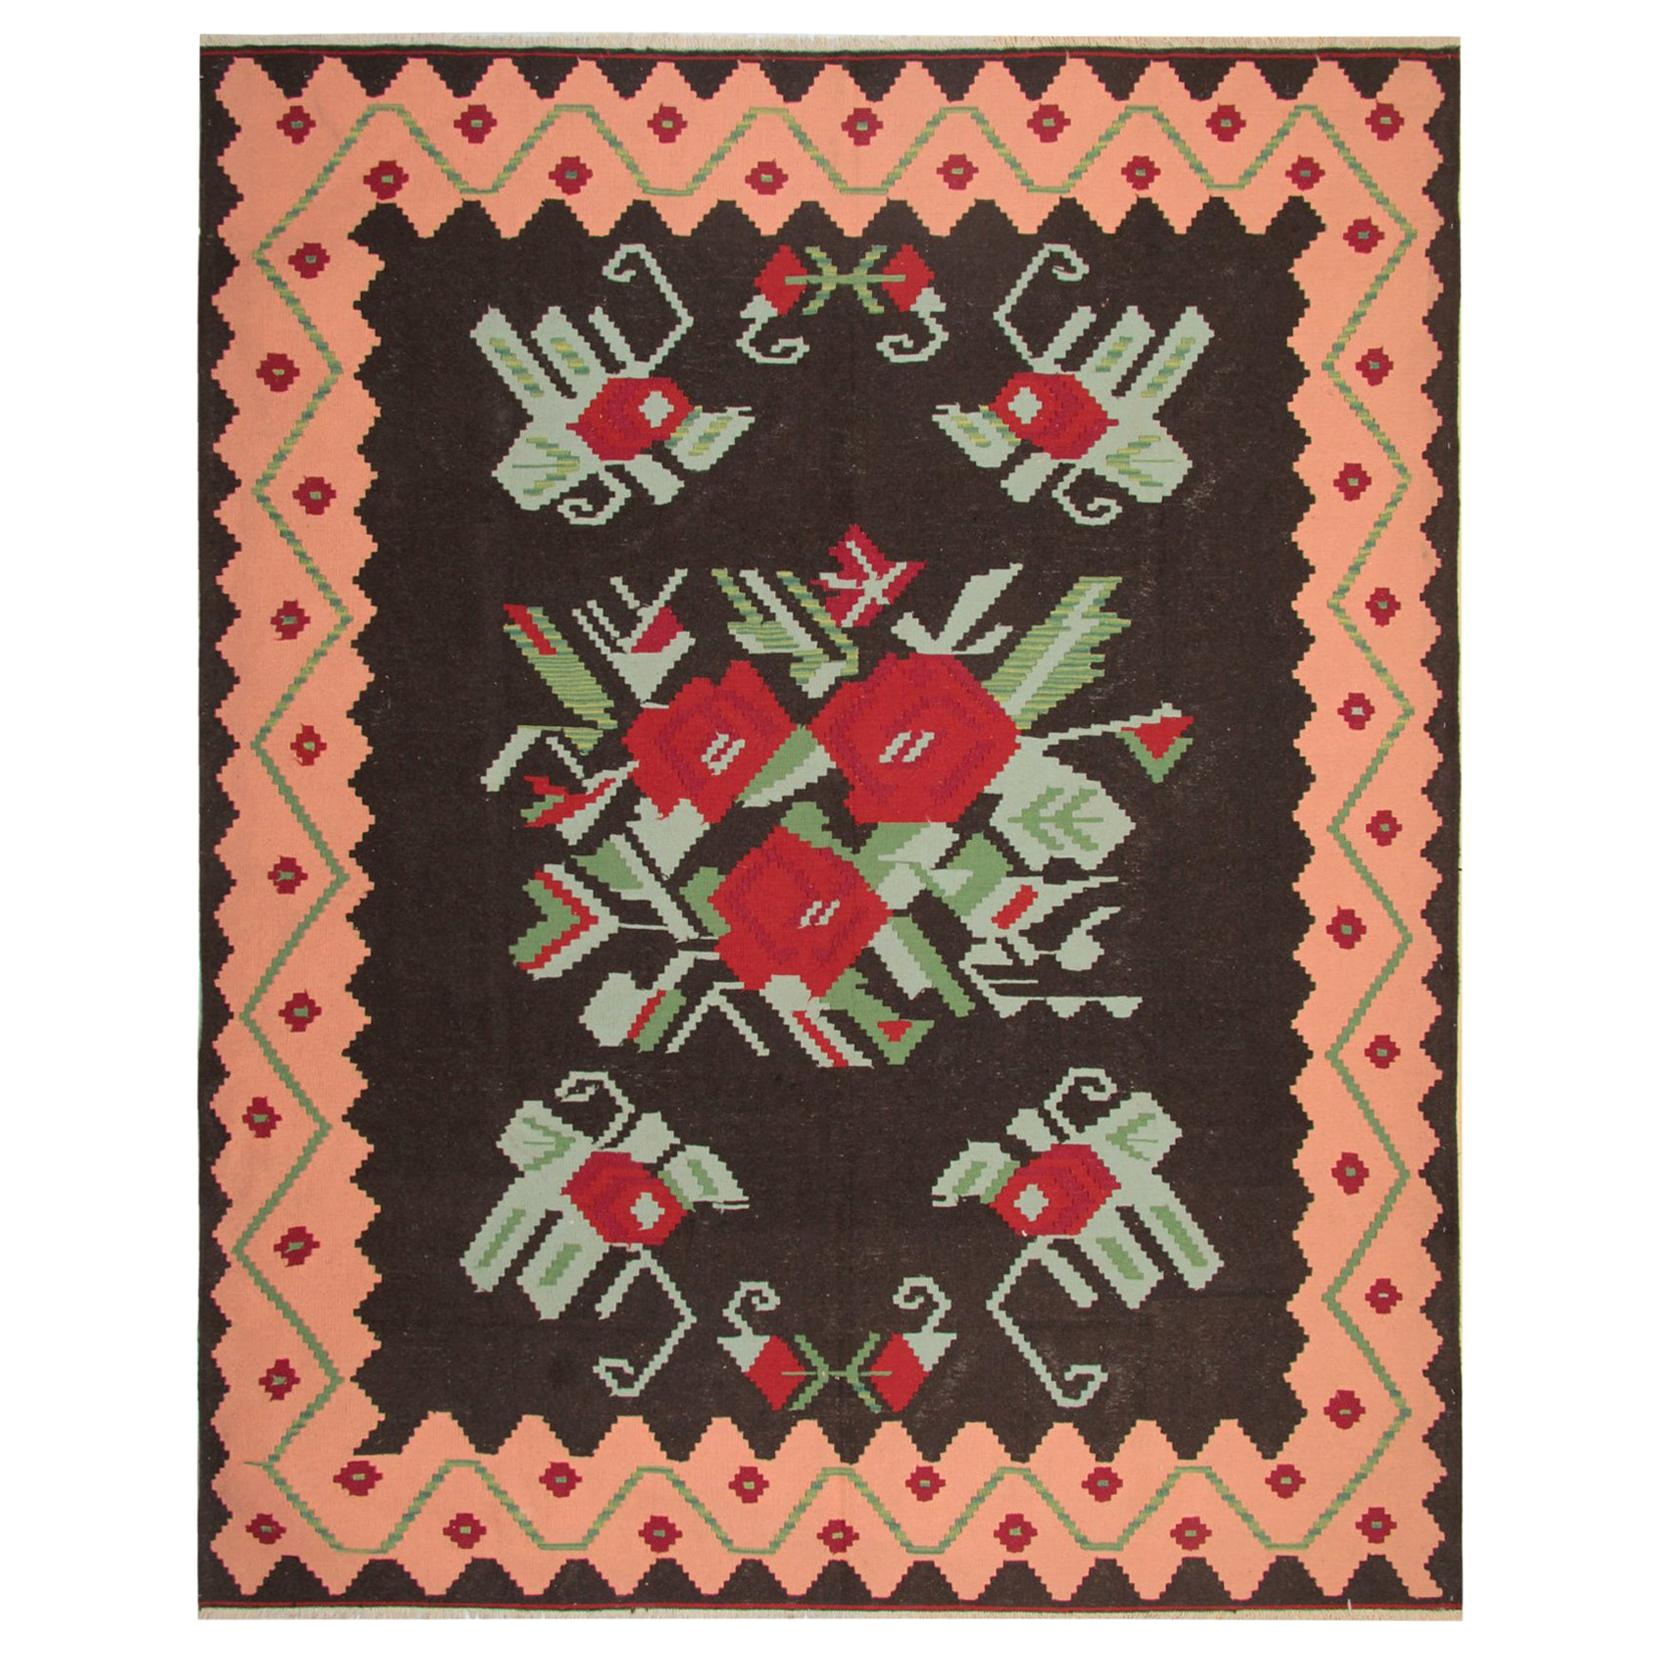 Antique Rugs Oriental Kilim Rugs, Traditional Rugs, Handmade Carpets for Sale